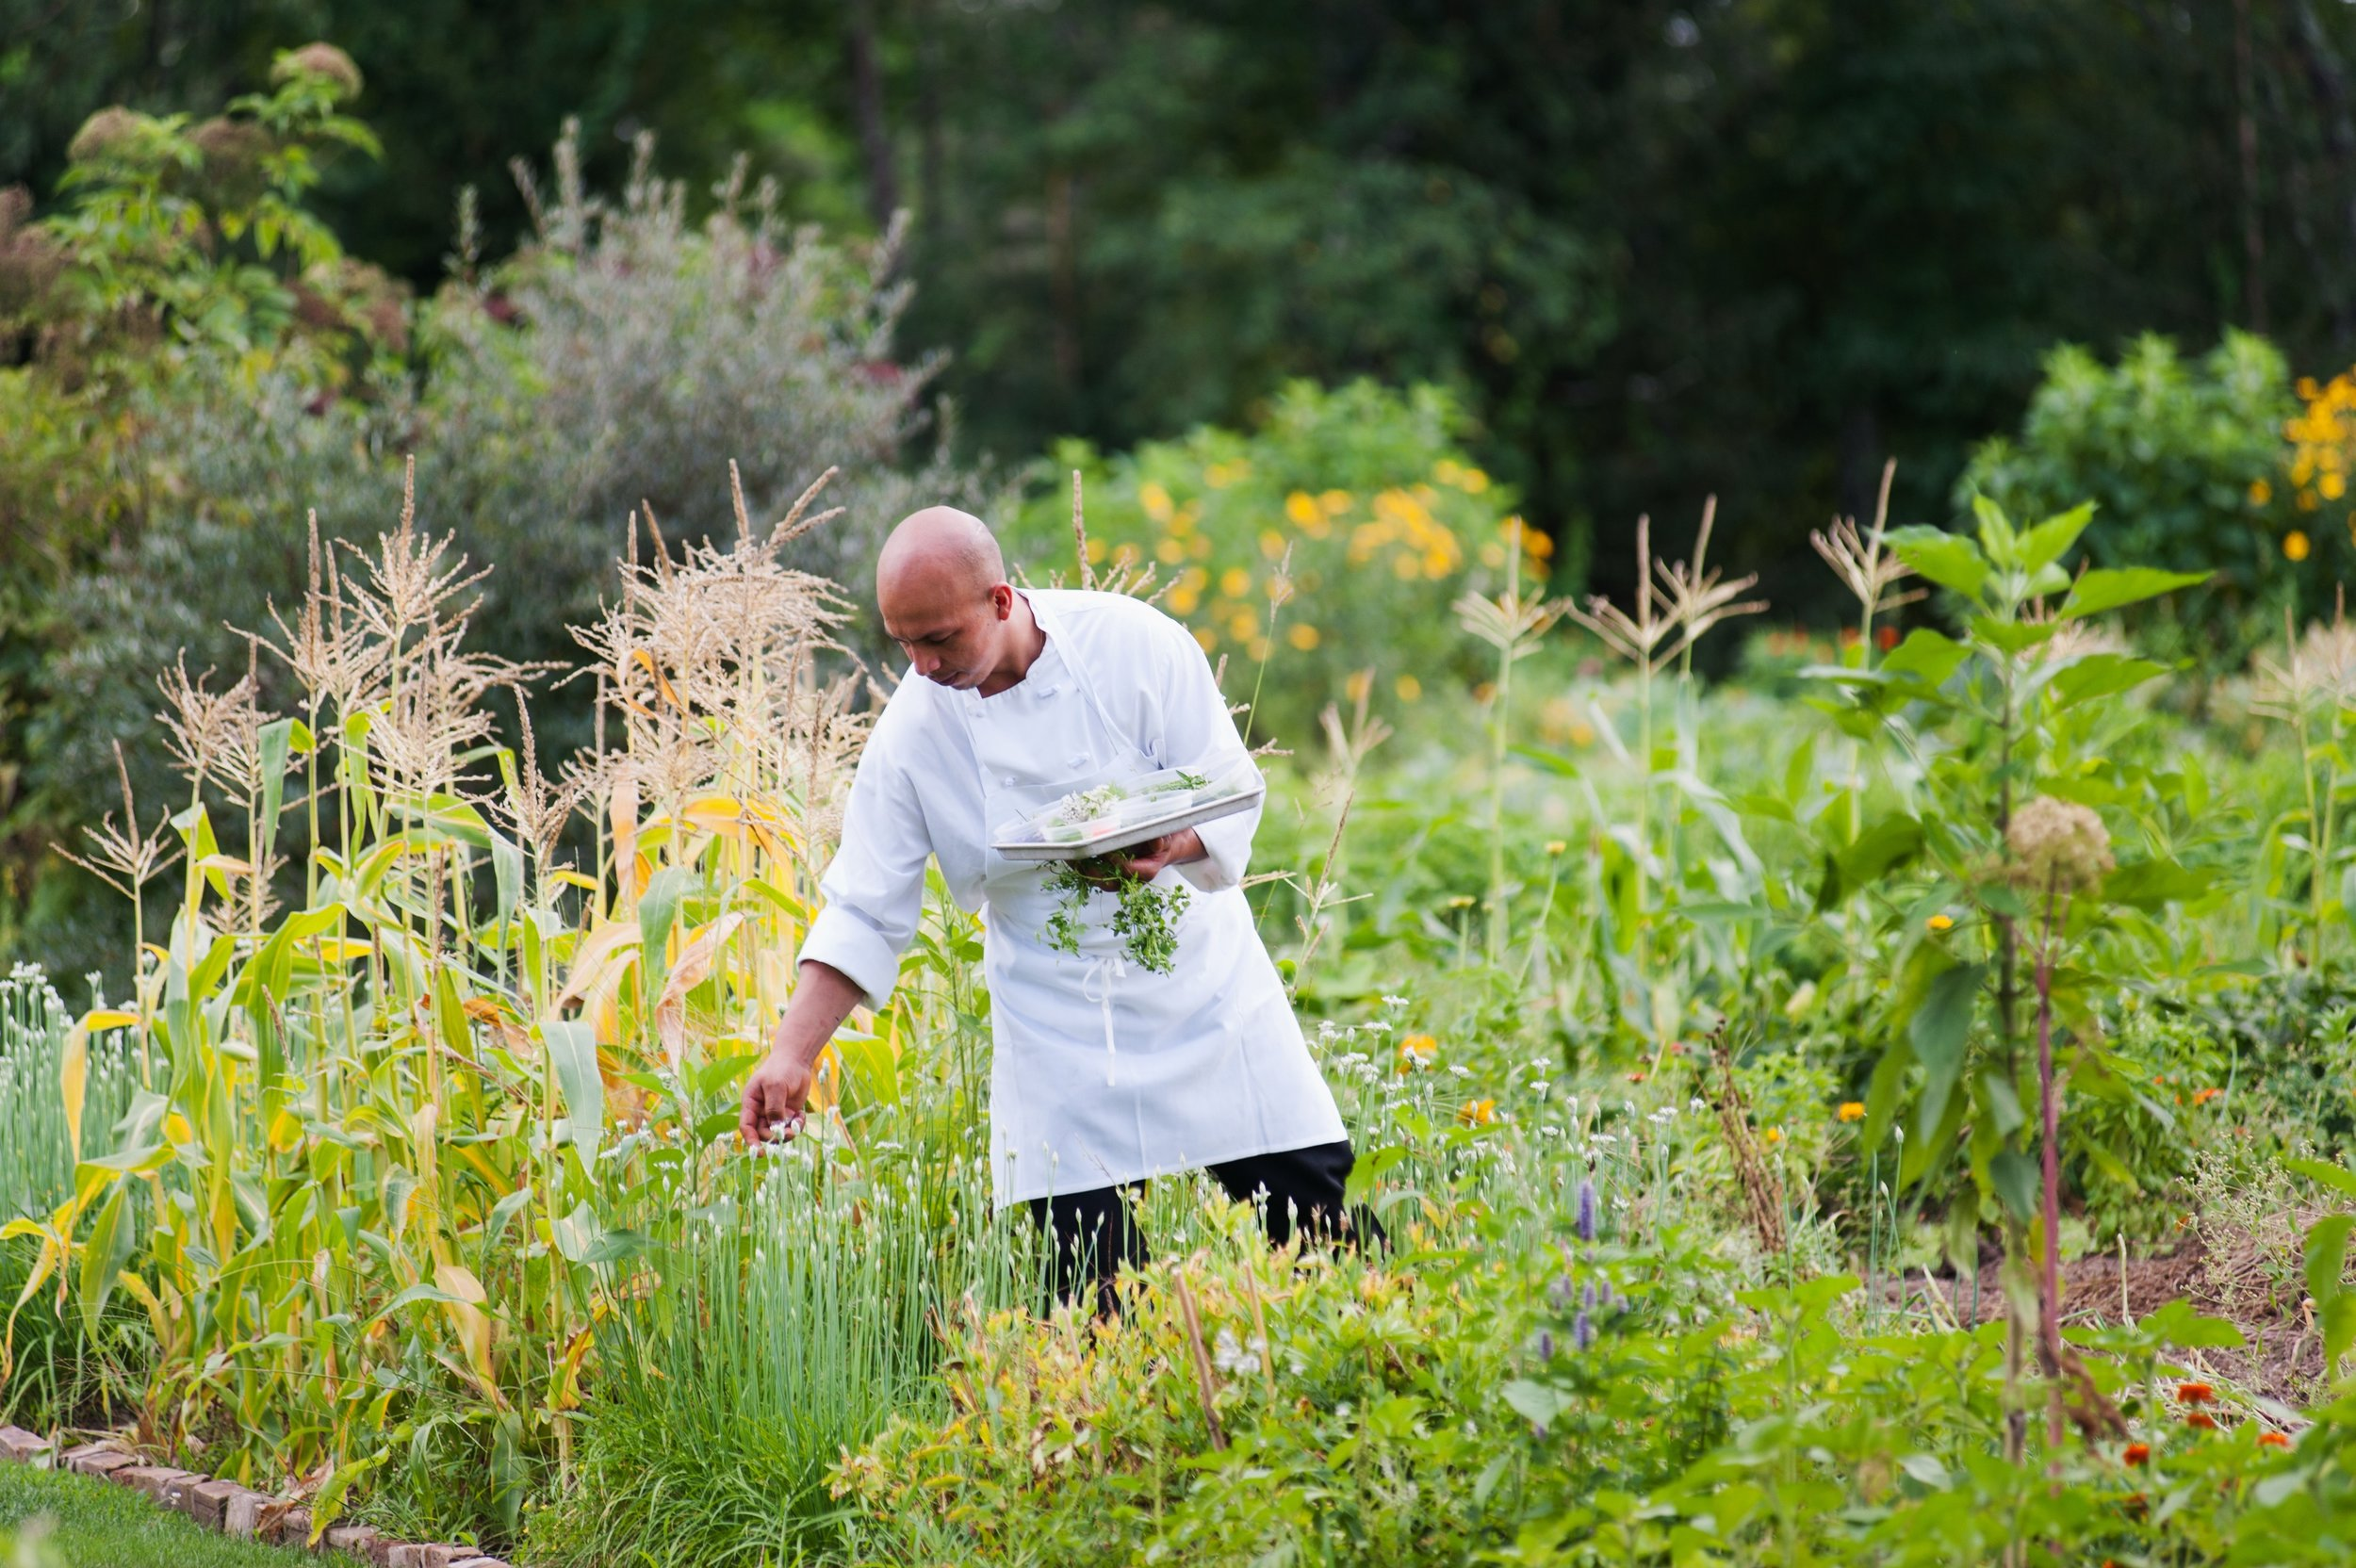 Copy of Chef Patrick in Garden 1 - Winvian Farm.jpg